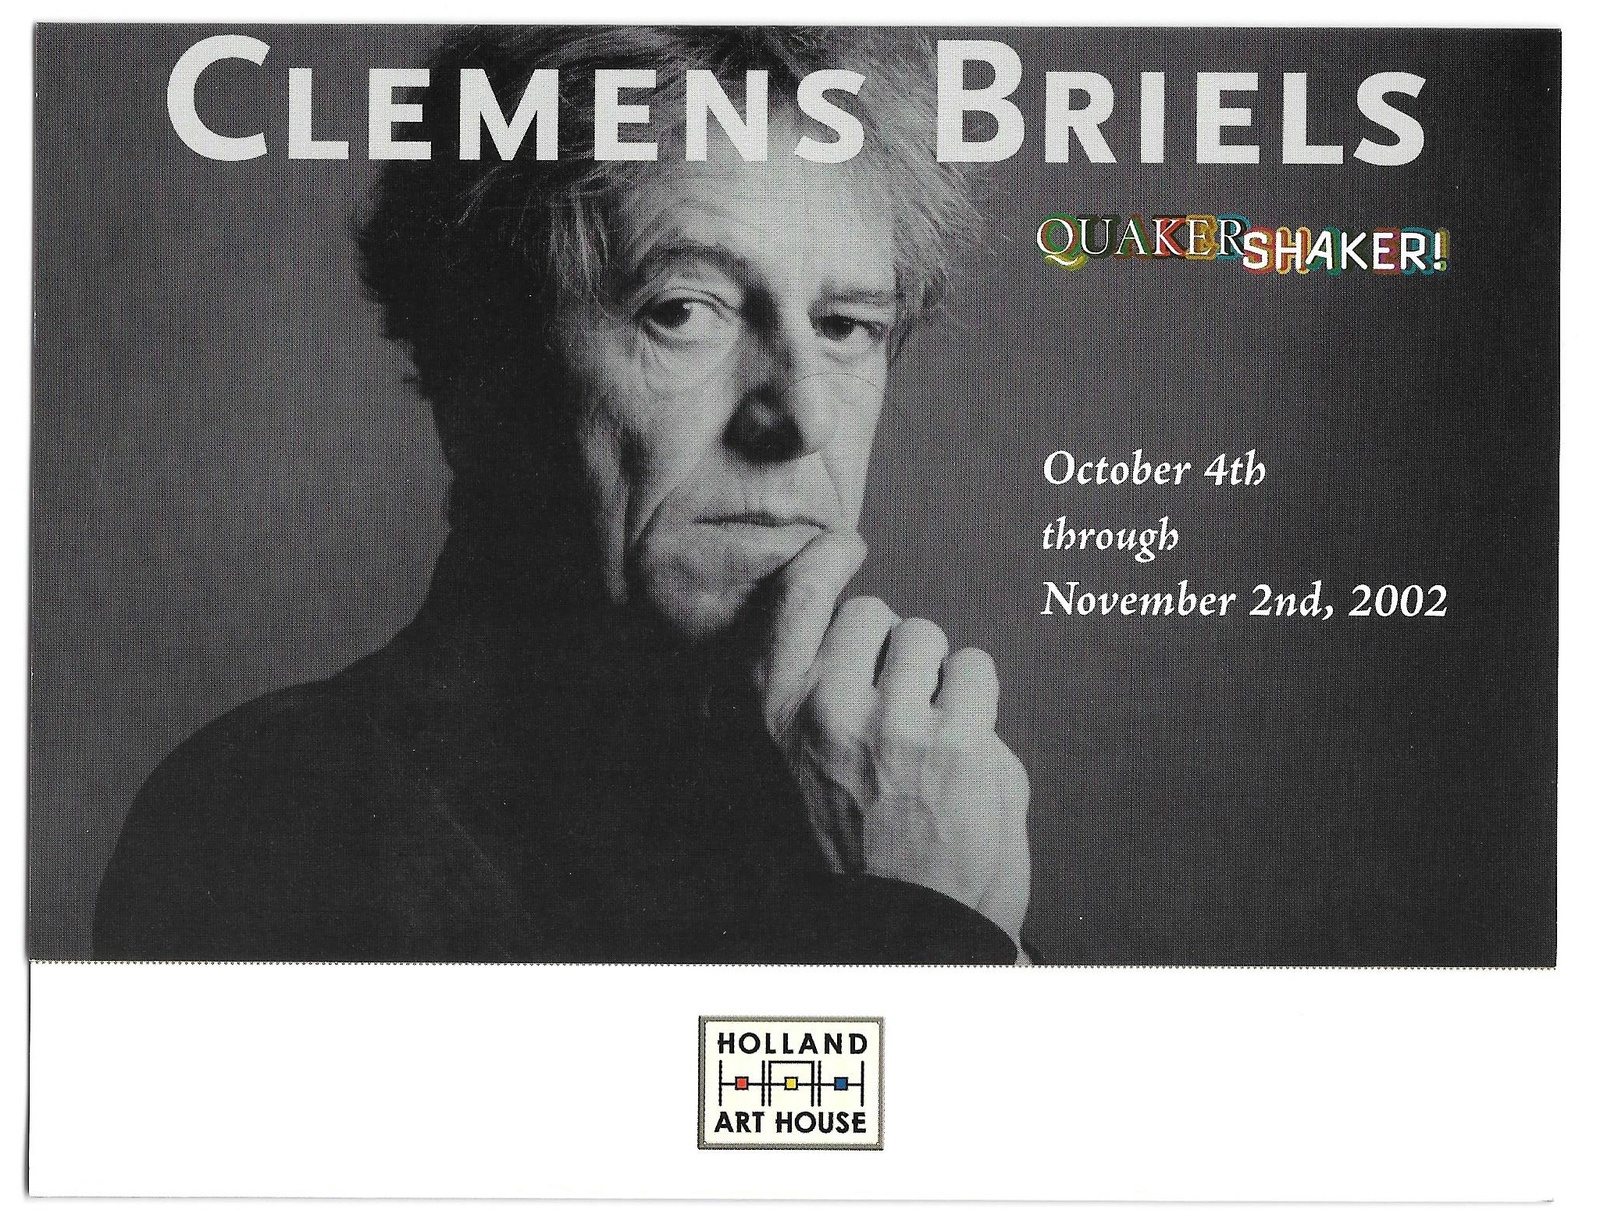 Primary image for West Chester PA Clemens Briels Art Exhibit 2002 Invitation Holland Art House